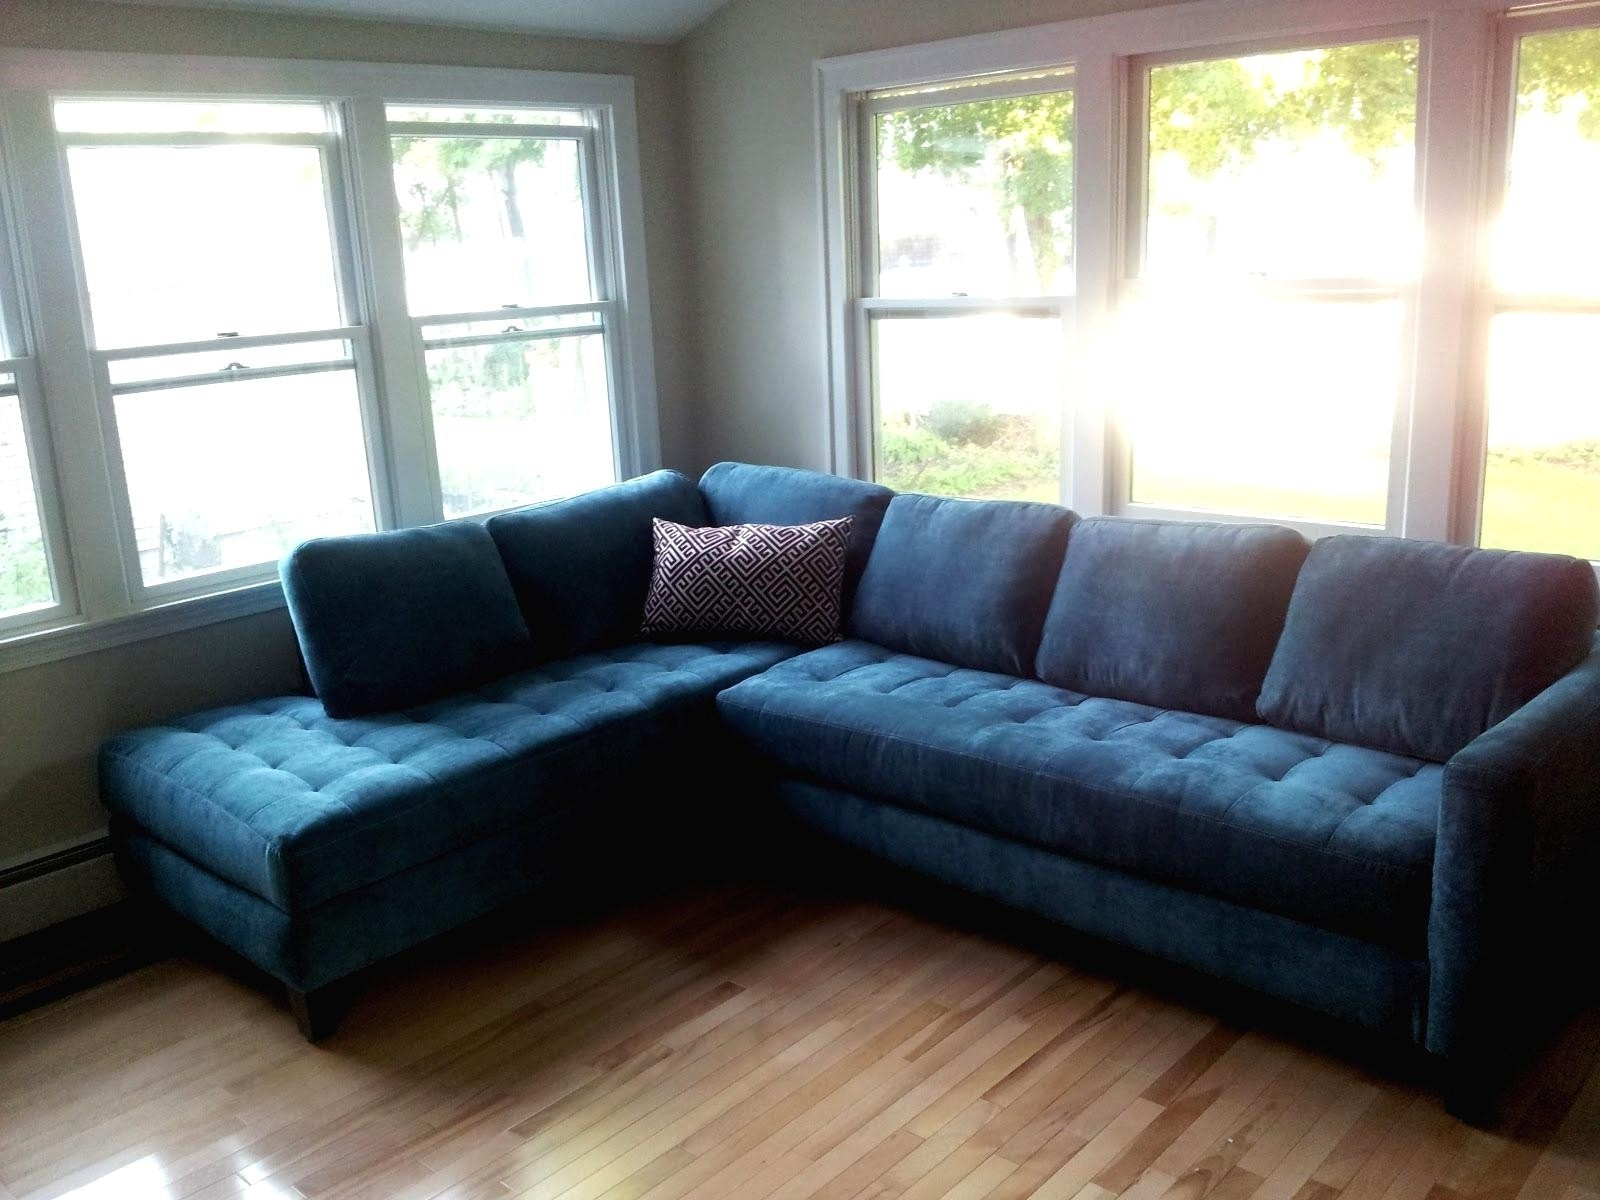 Blue Sectional Sofas Throughout Fashionable Sofa : Blue Sectional Sofa Images Blue 2 Piece Sectional Sofa (View 6 of 15)